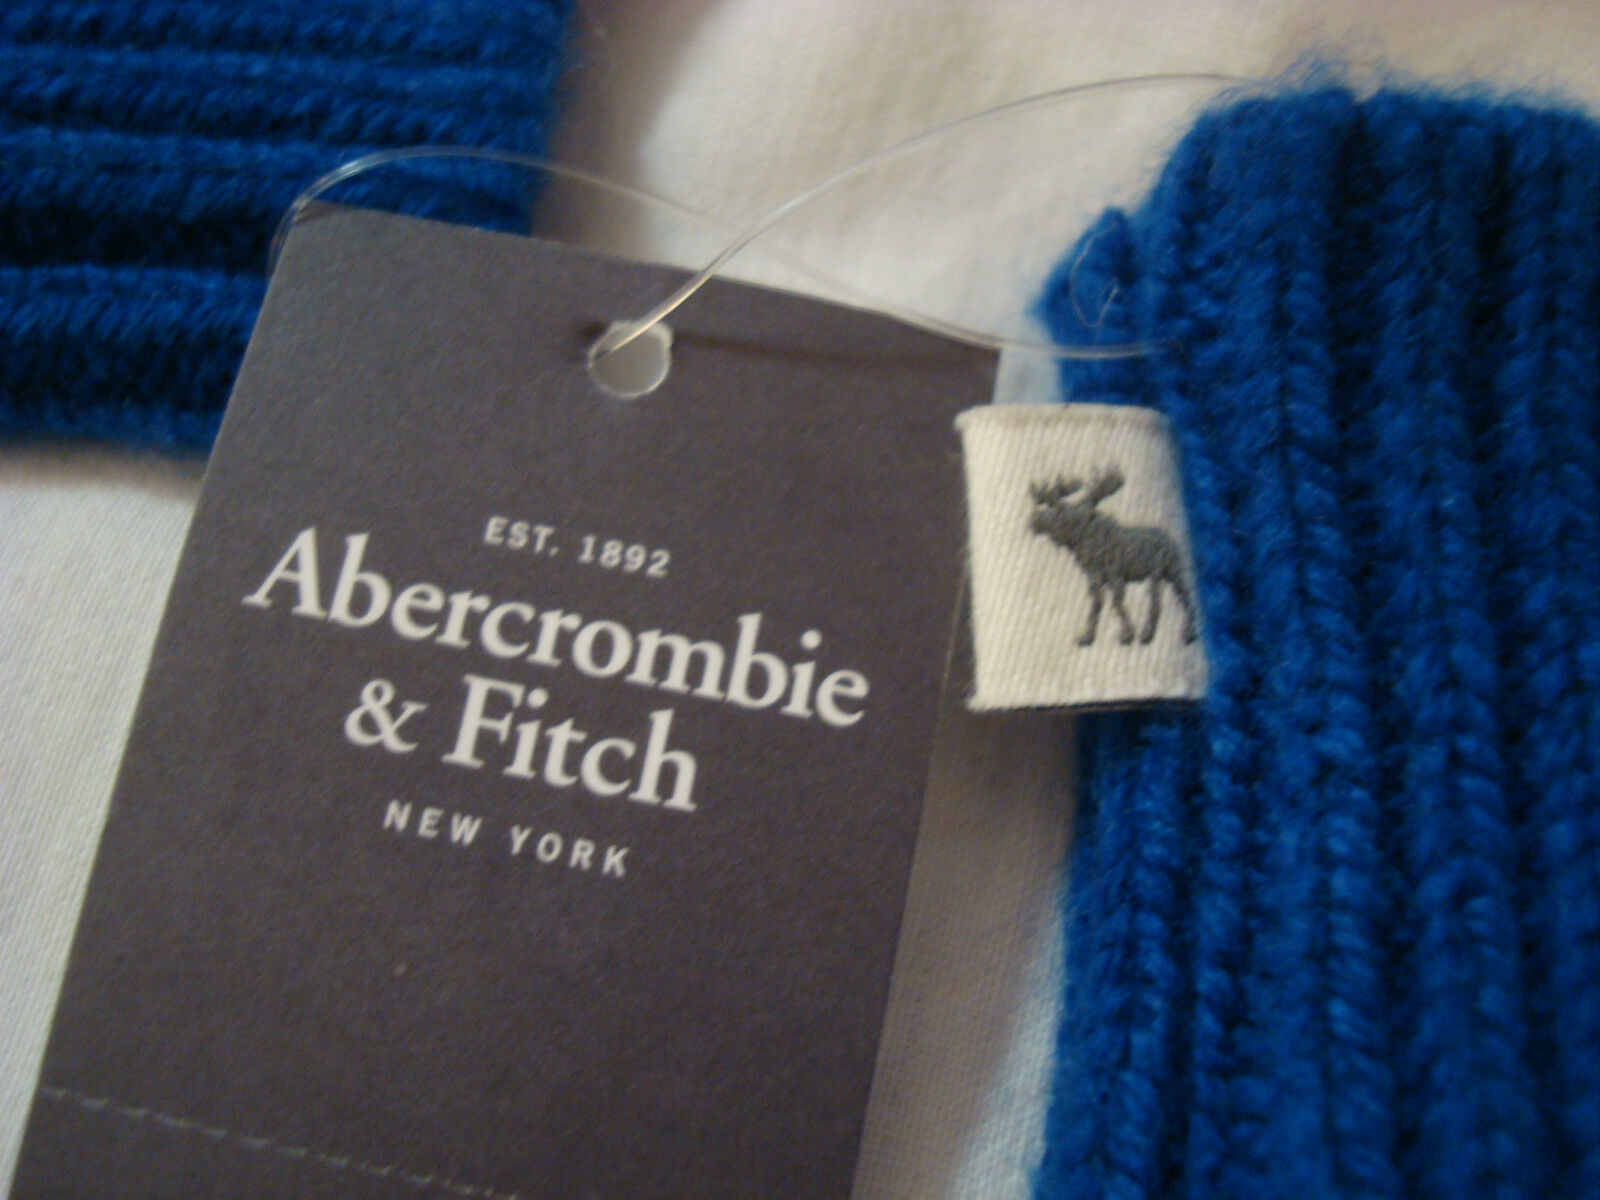 abercrombie logo tattoo abercrombie and fitch moose we are abercrombie ...